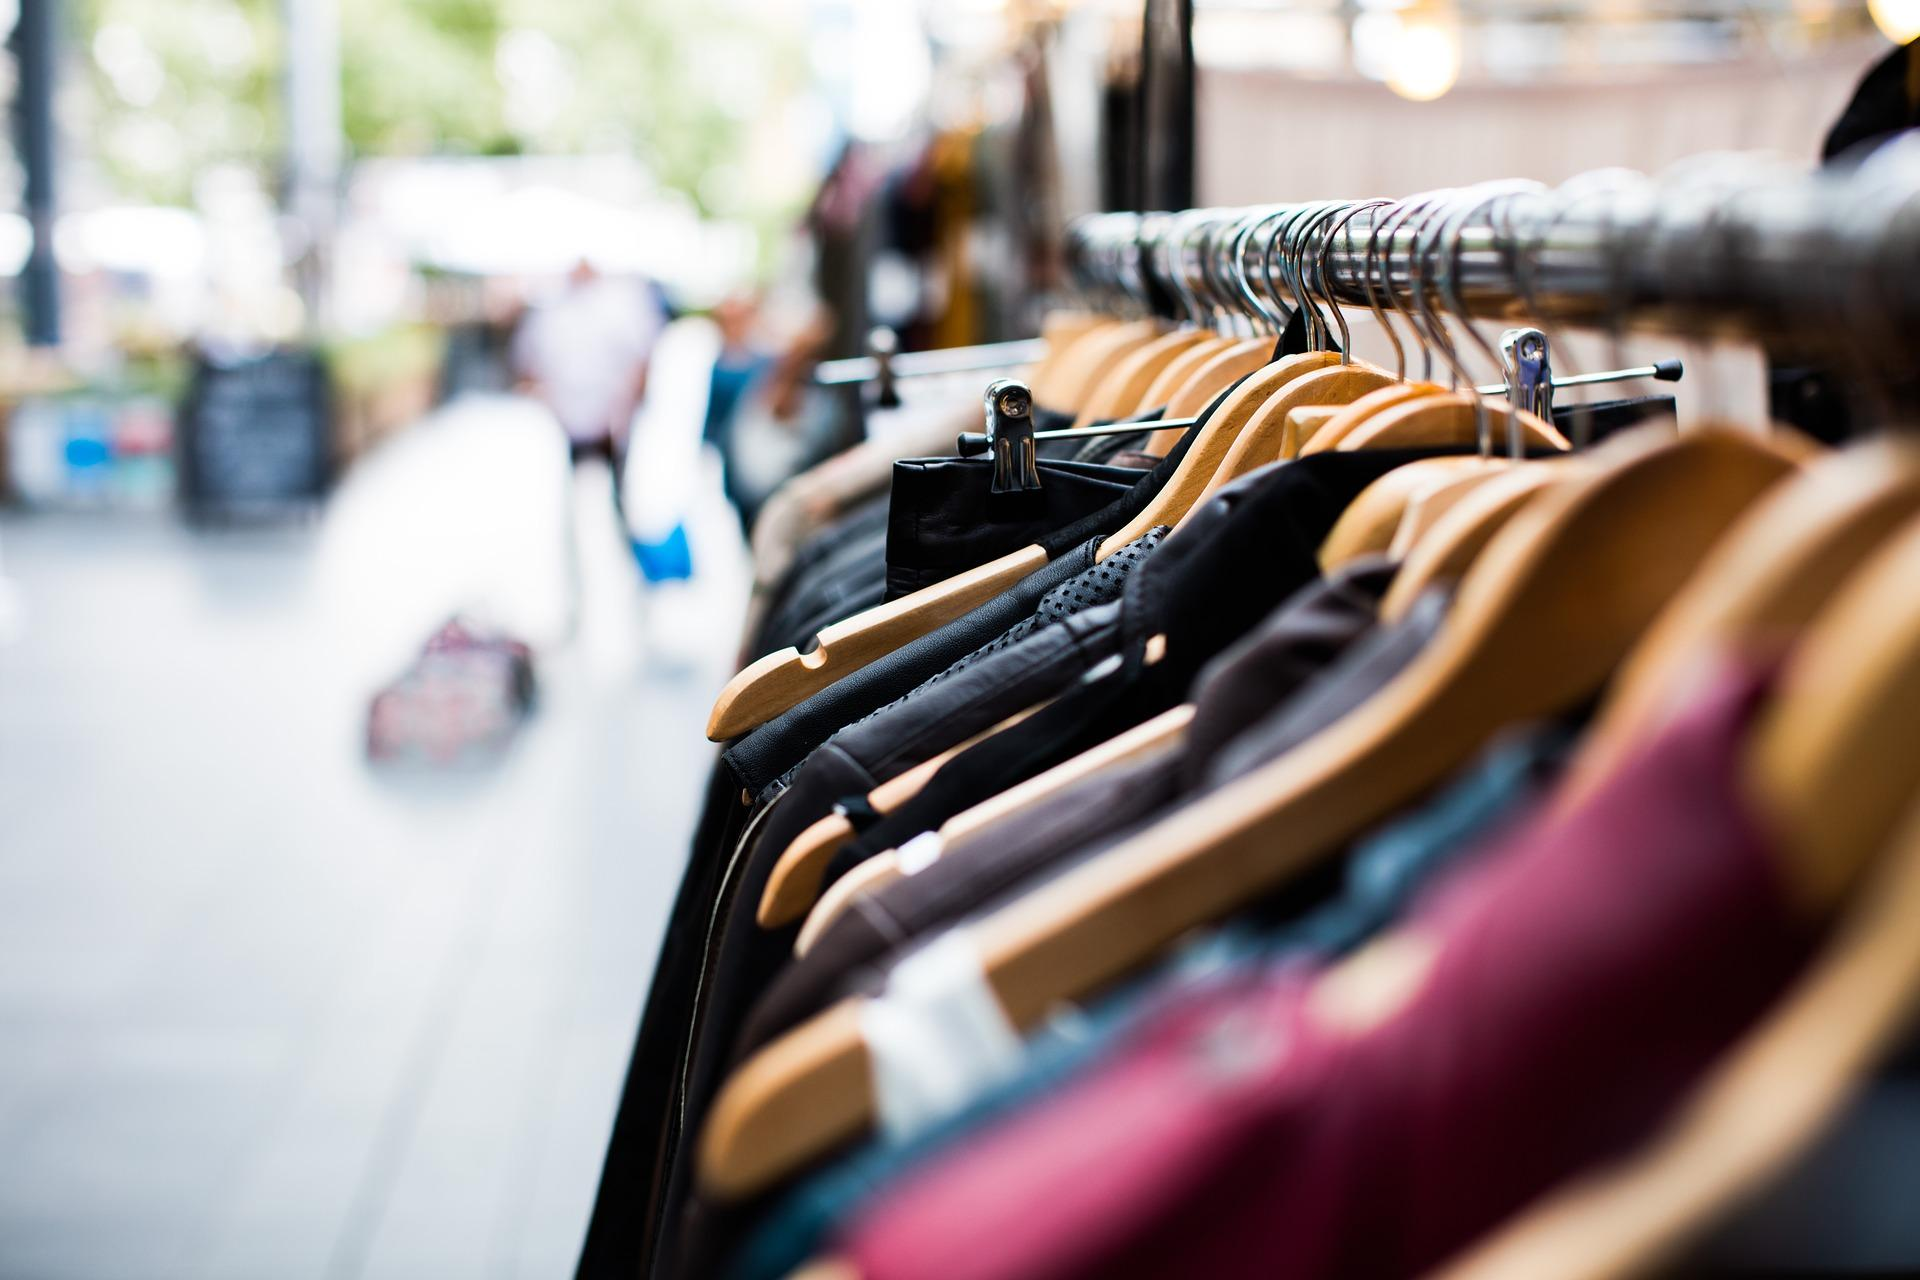 Are charity shops an answer to help sustainable fashion?